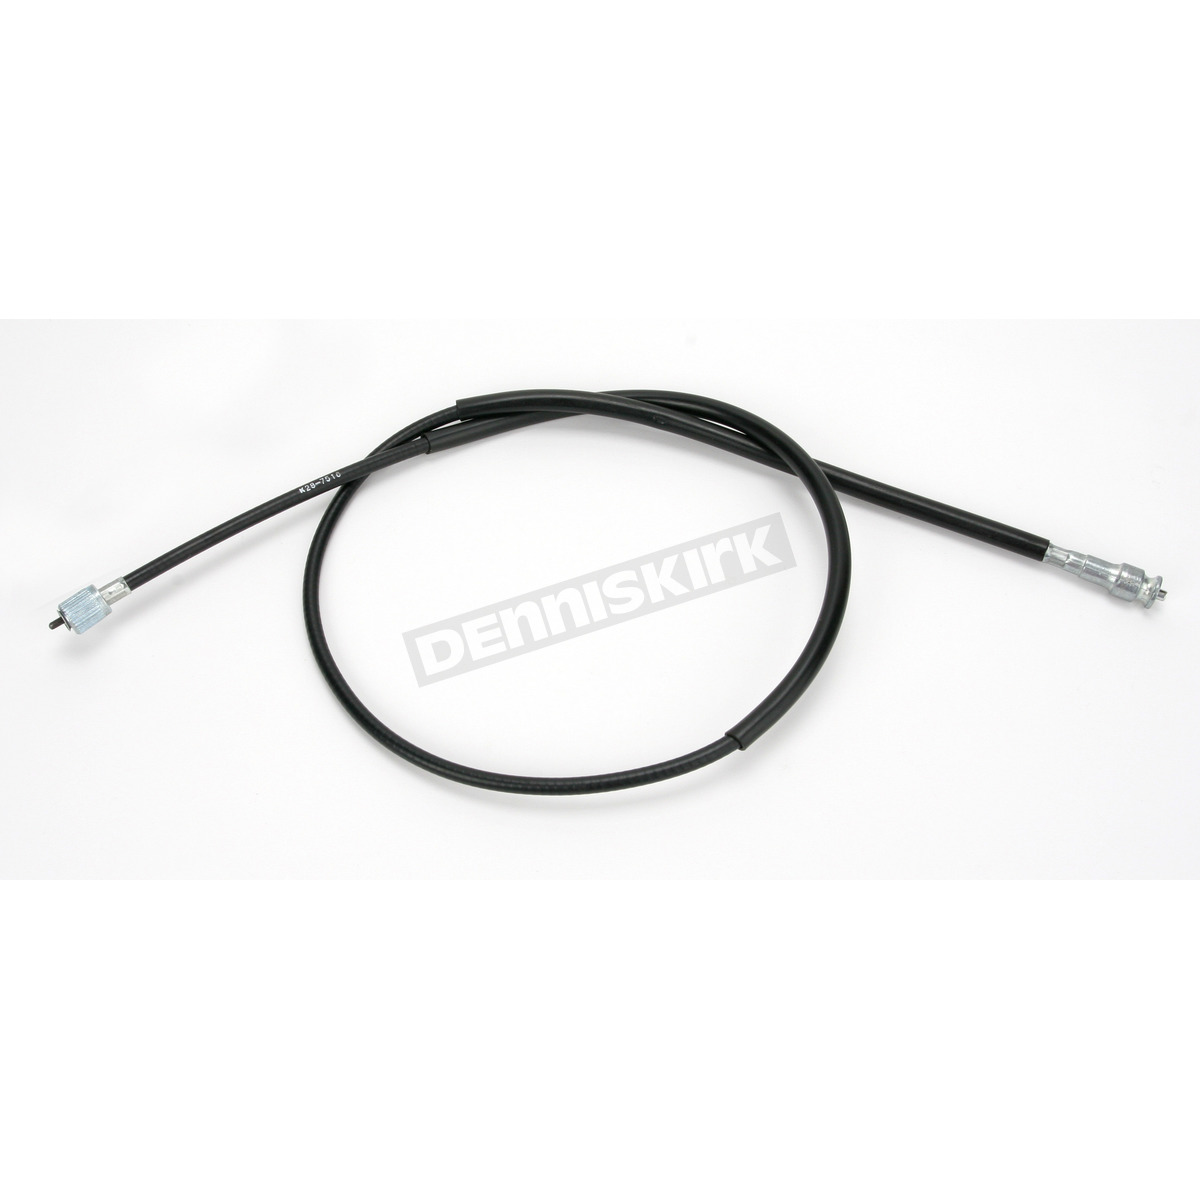 Parts Unlimited Tachometer Cable